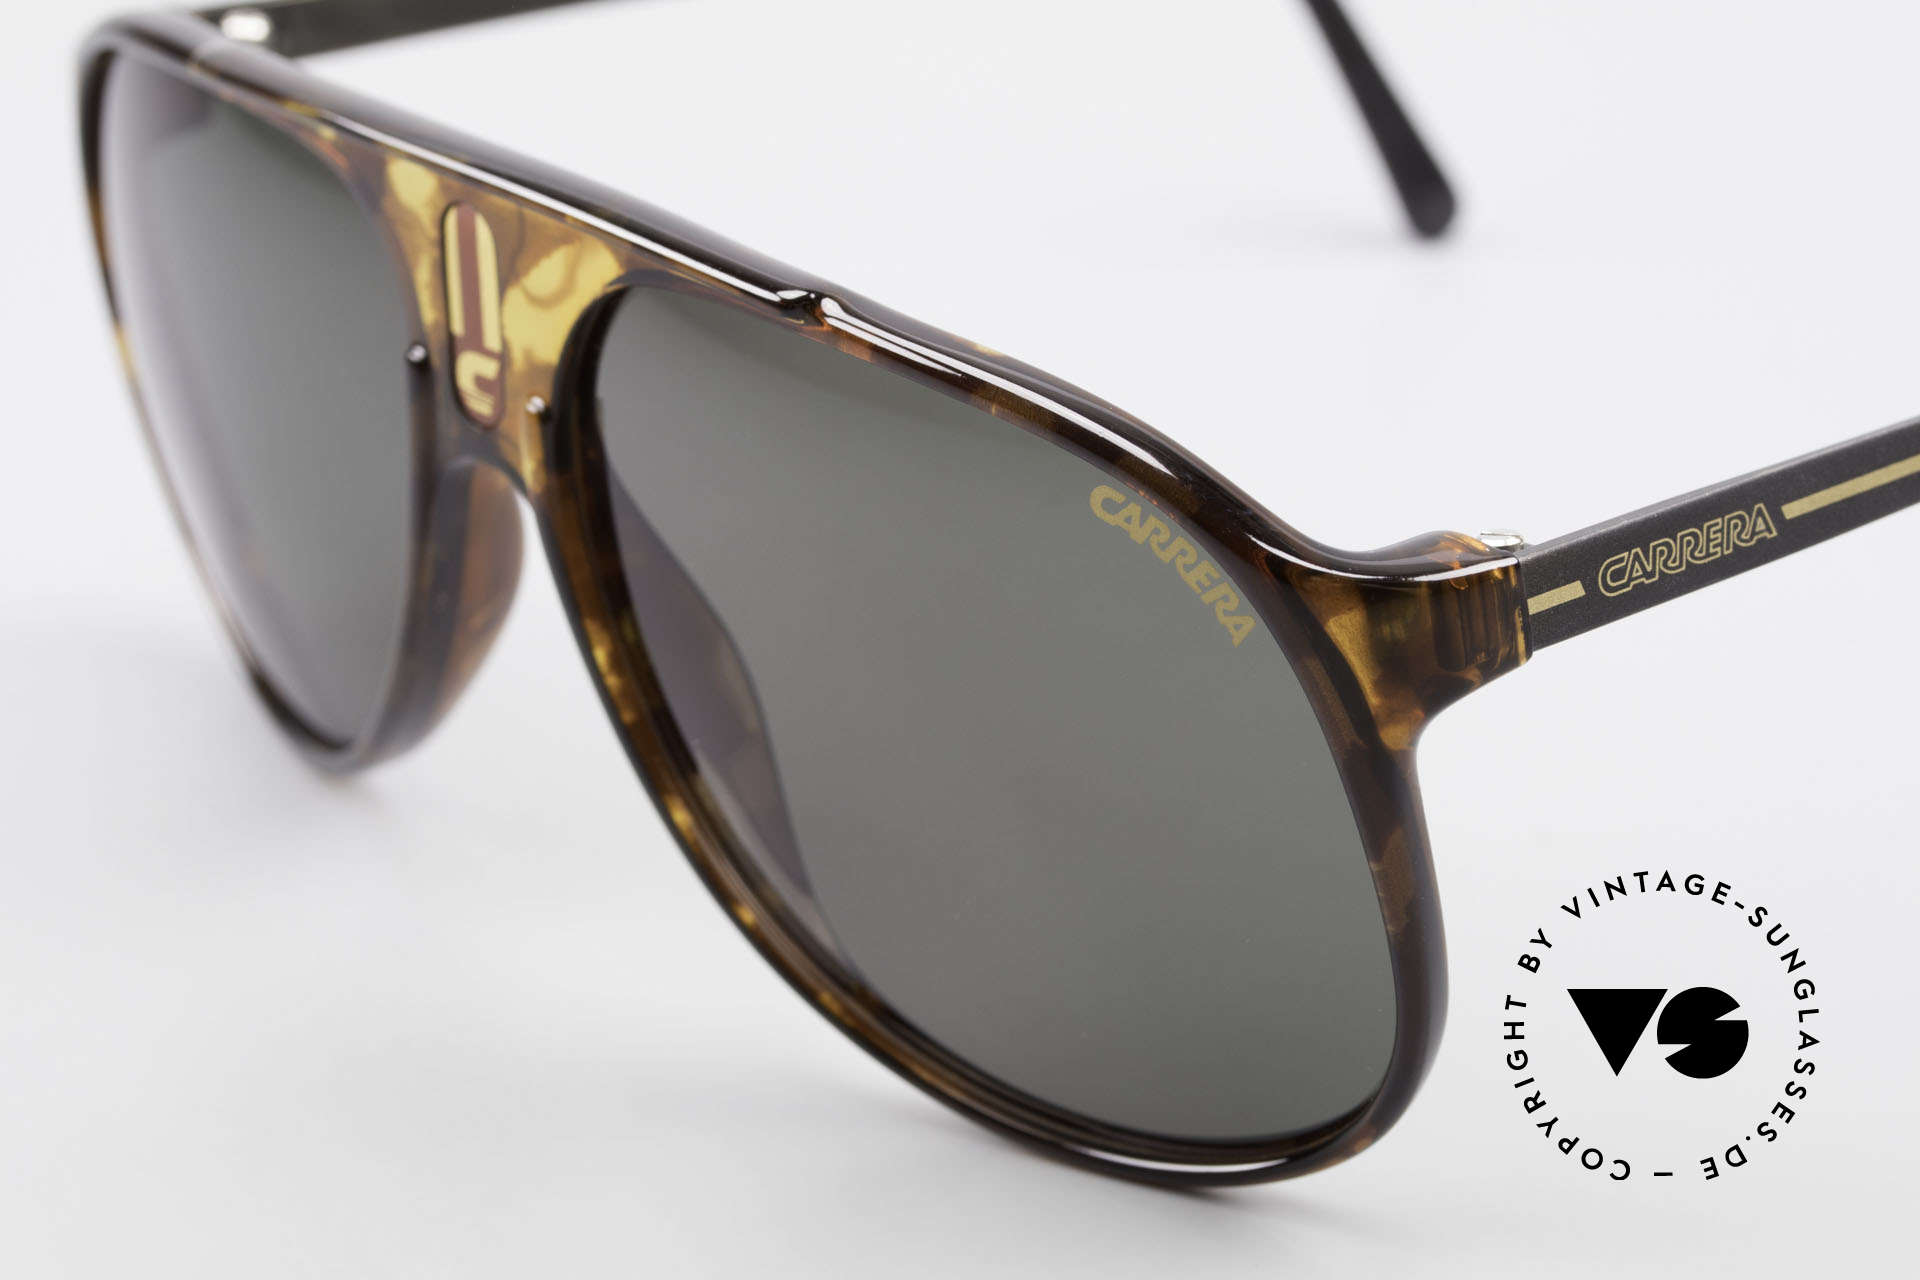 Carrera 5424 80's Aviator Sports Sunglasses, functional shades and a stylish accessory likewise, Made for Men